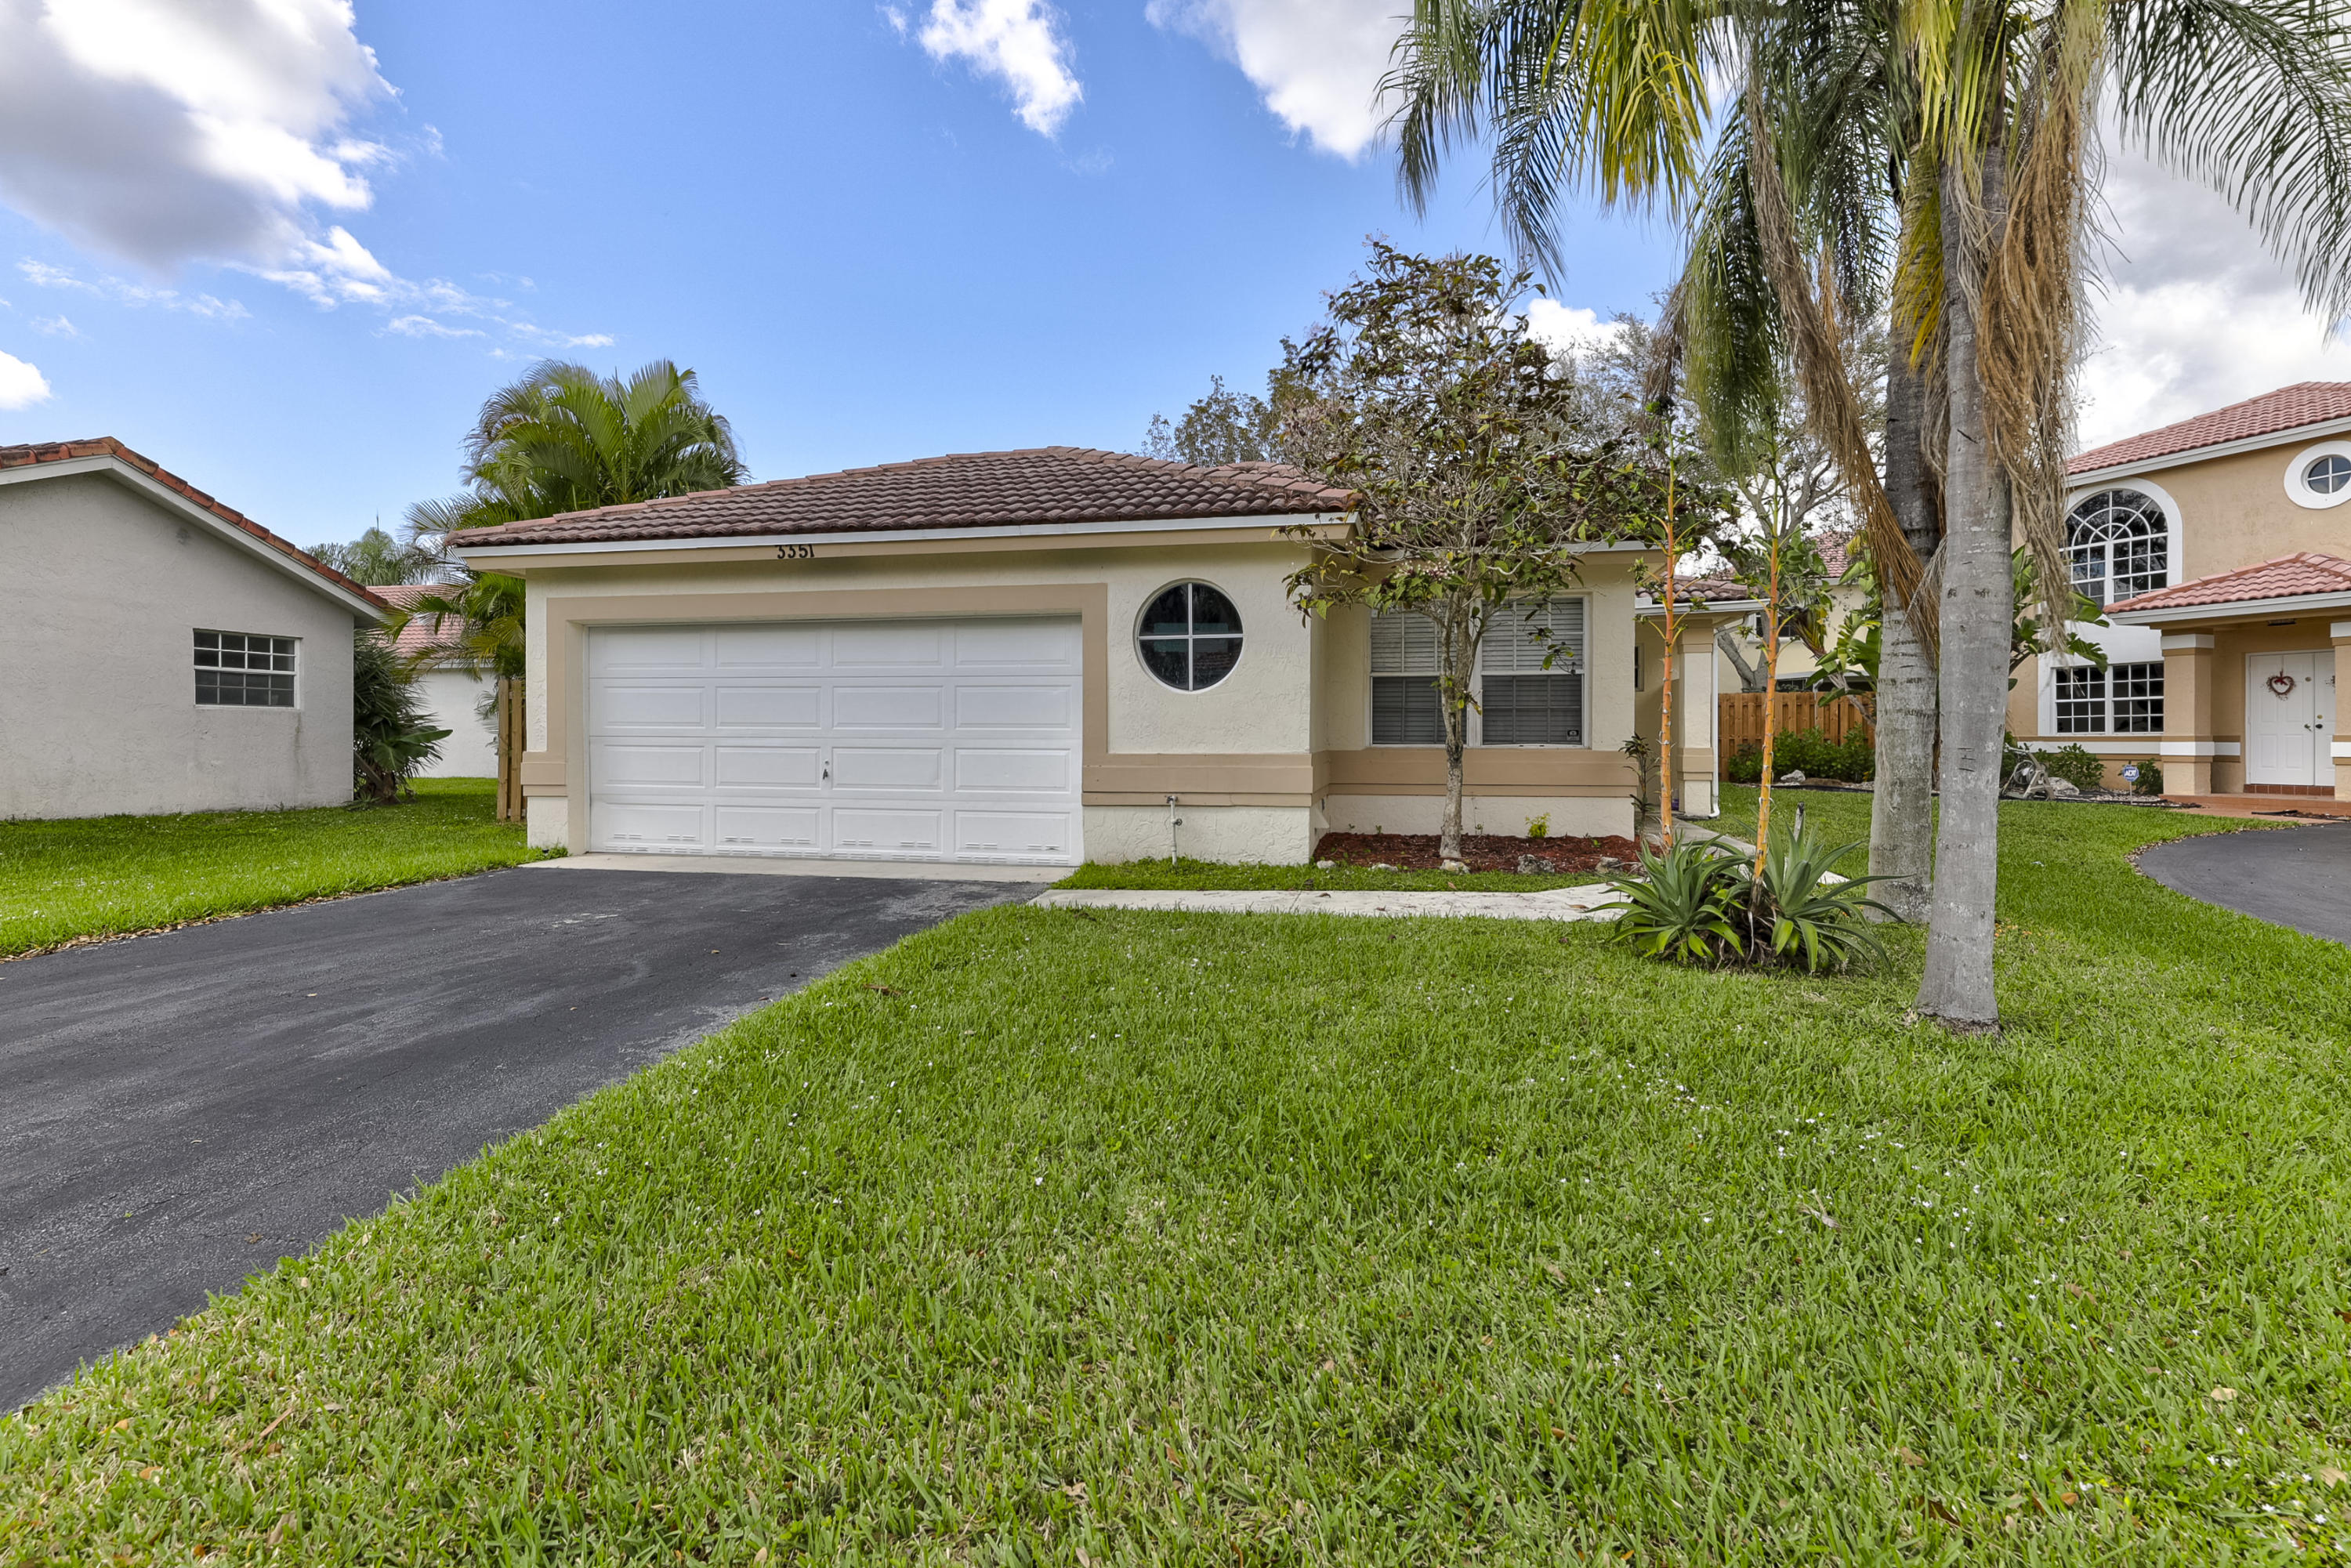 Photo of home for sale at 3351 78 Avenue NW, Margate FL